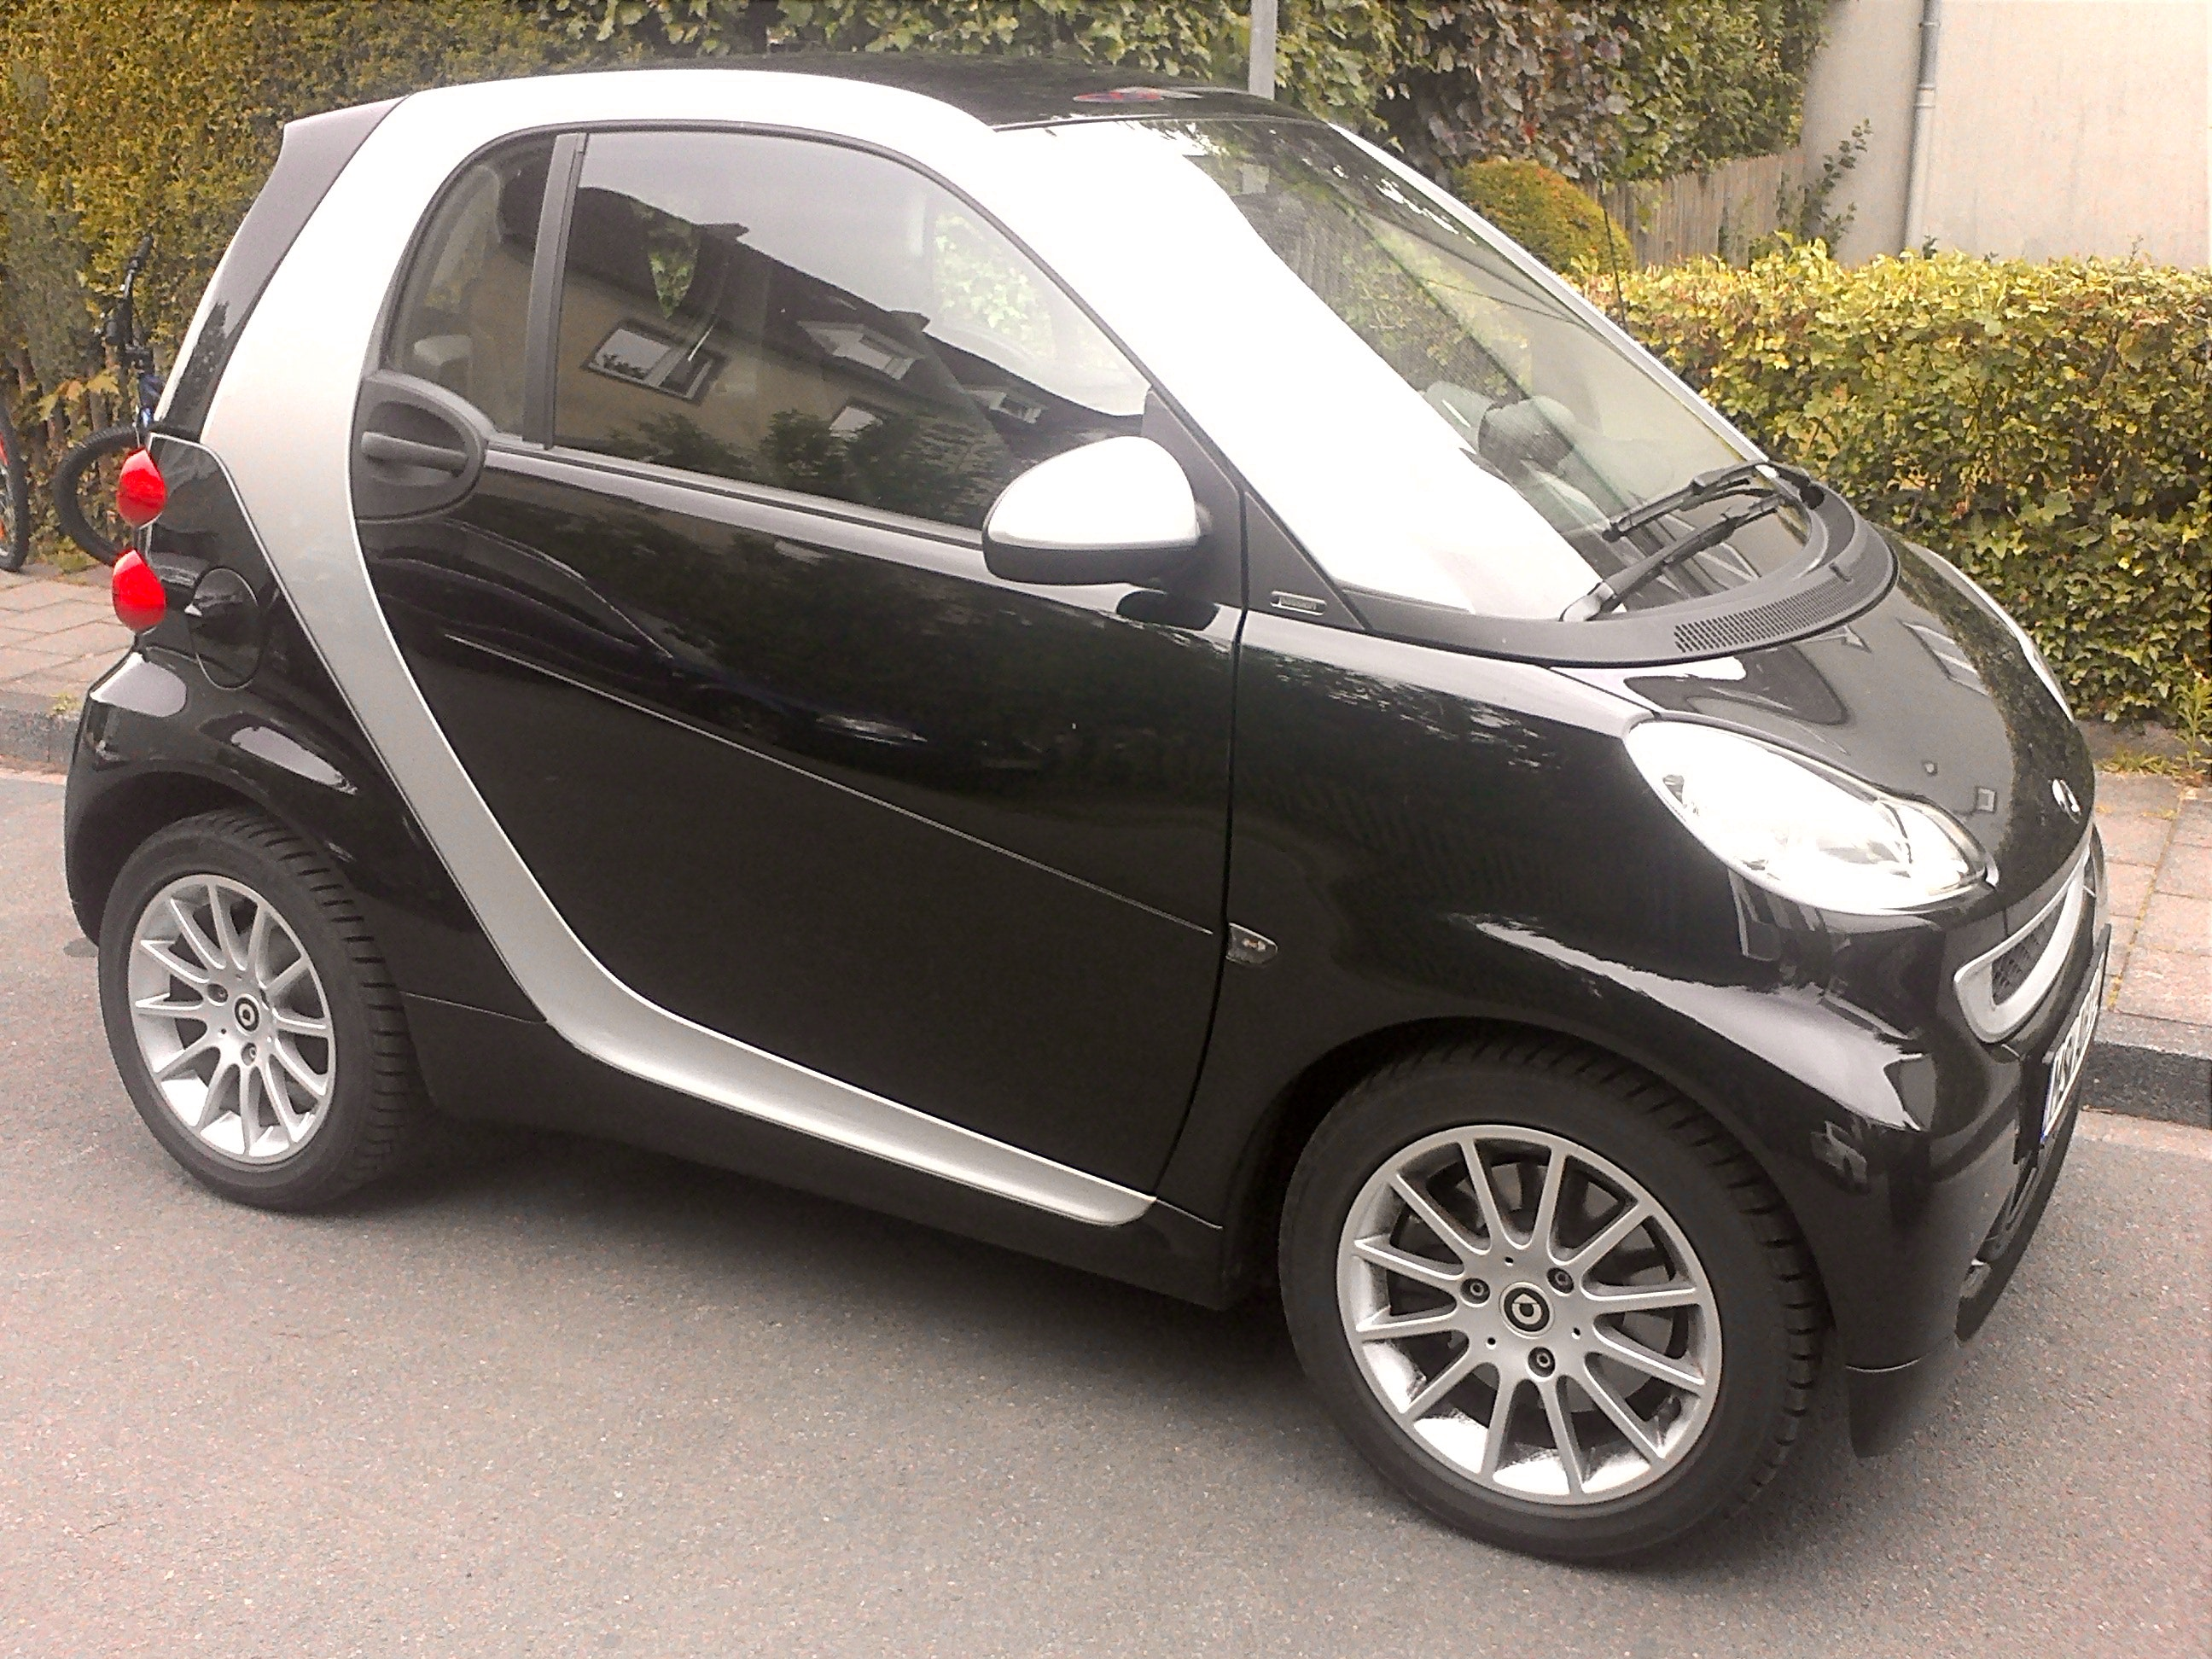 Smart fortwo coupé mhd, 2011